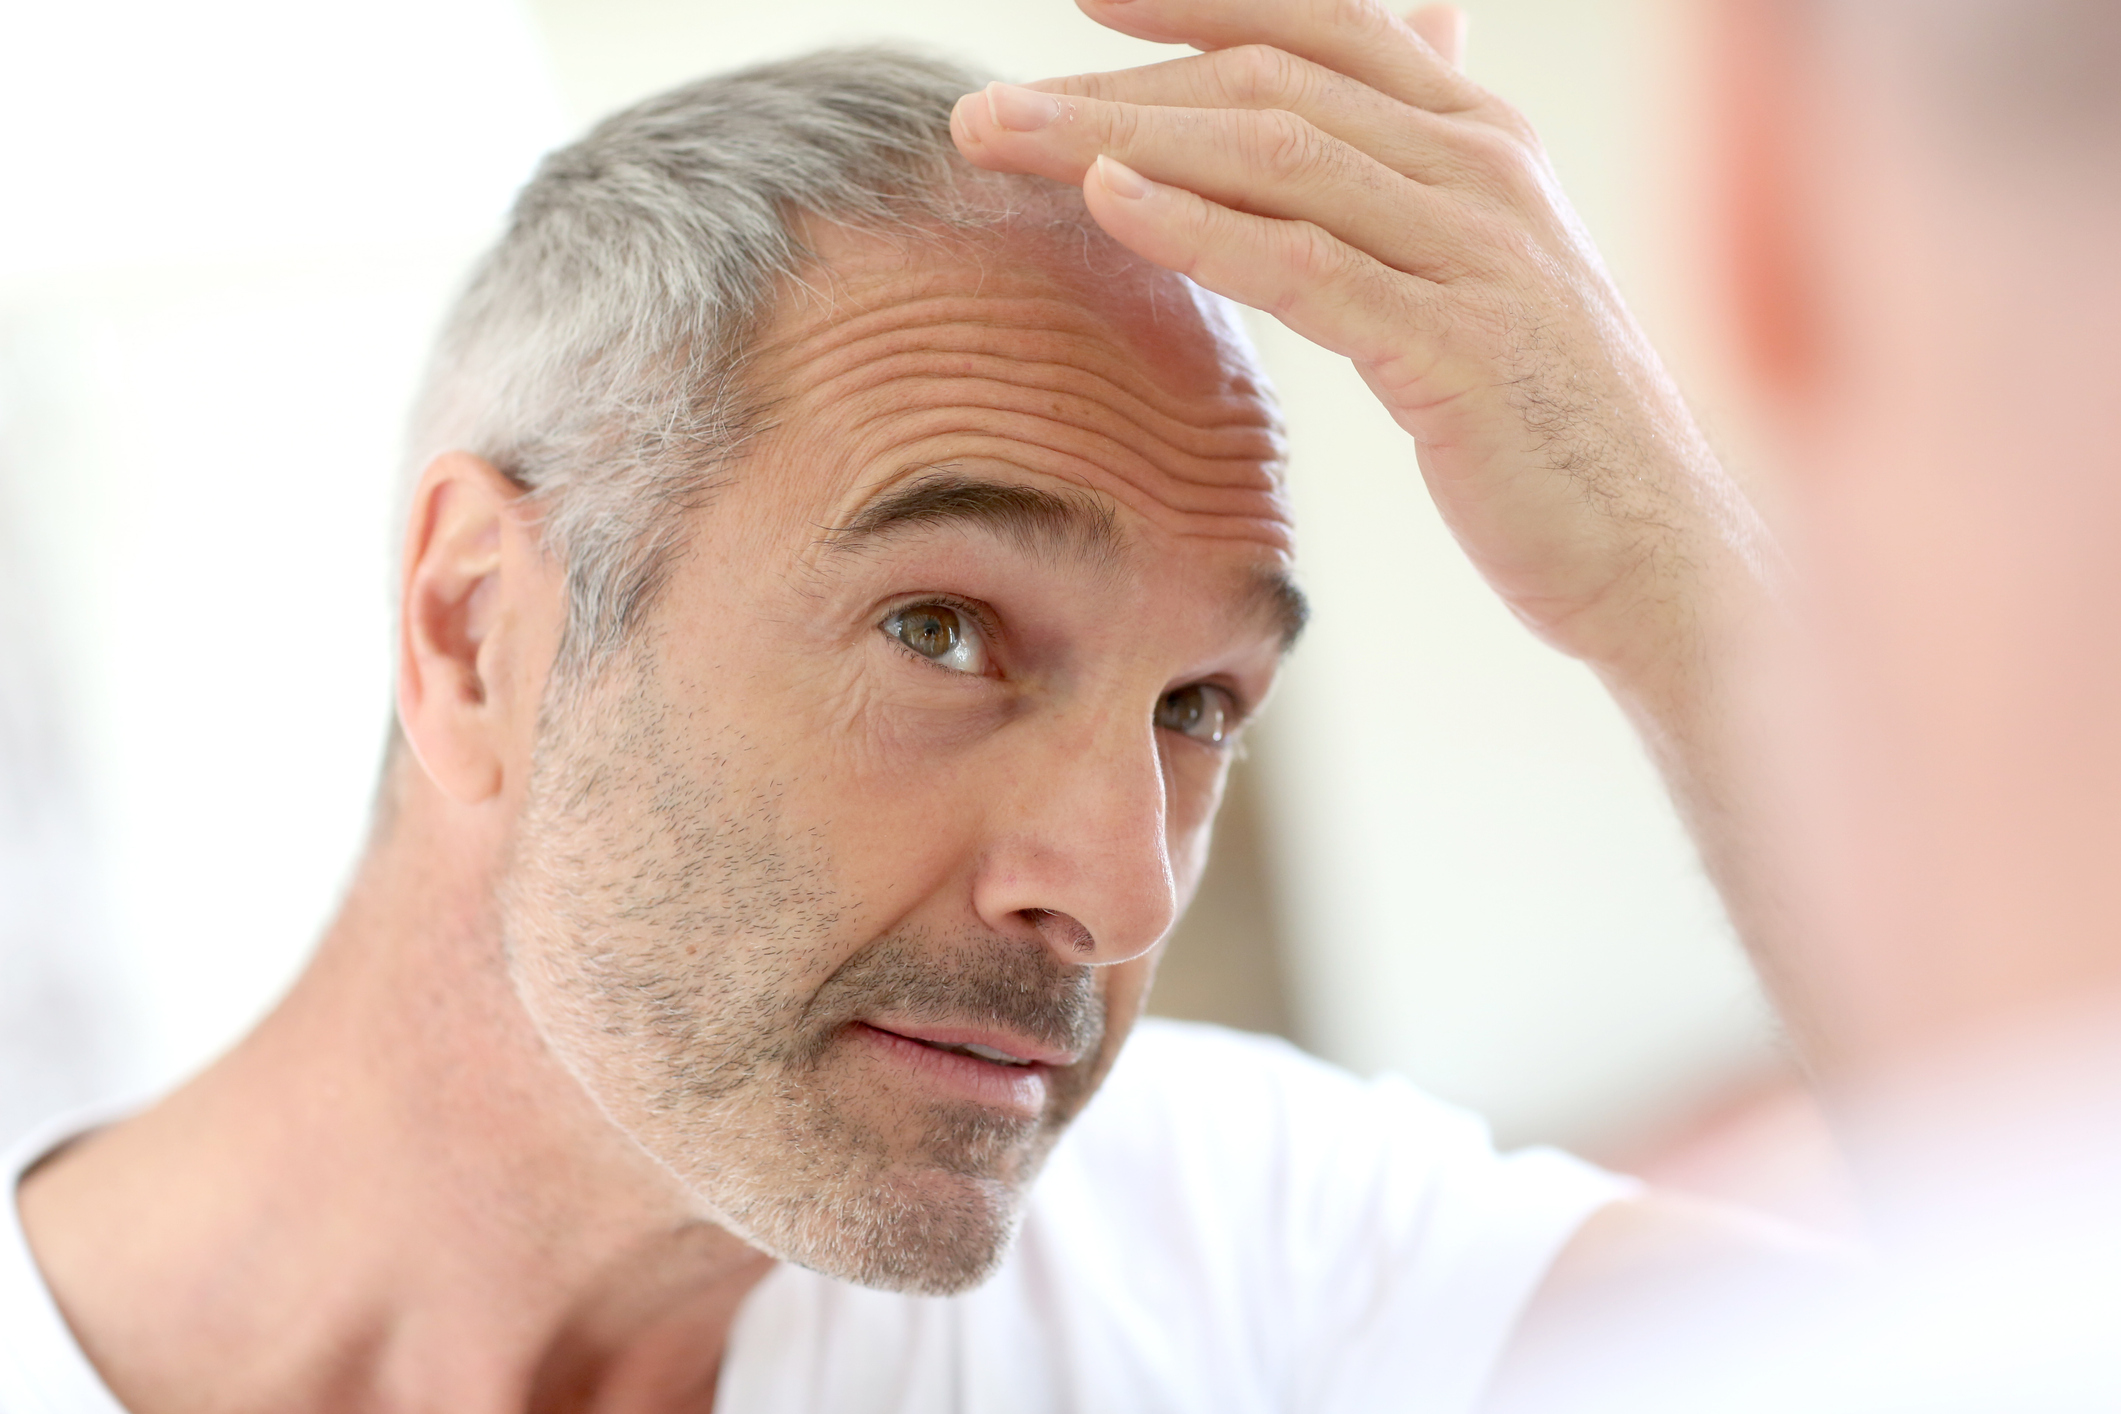 Mature man in bathroom taking care of his hair